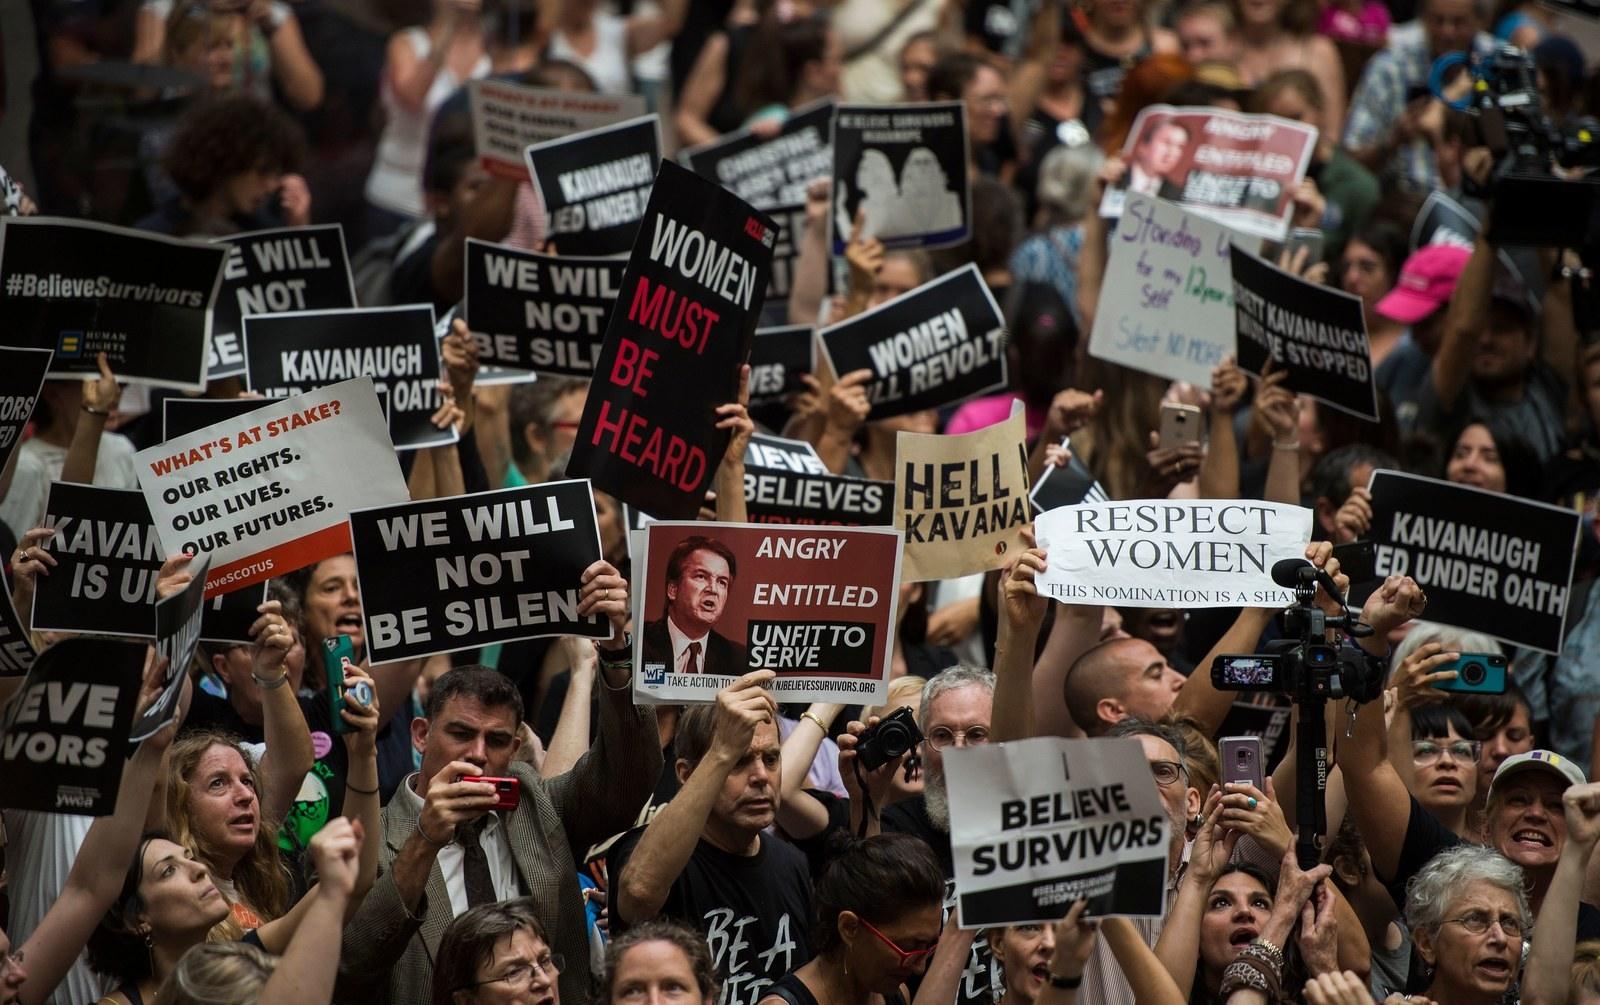 Protesters stormed the Hart Senate Building on Capitol Hill Thursday to protest Supreme Court nominee Brett Kavanaugh.